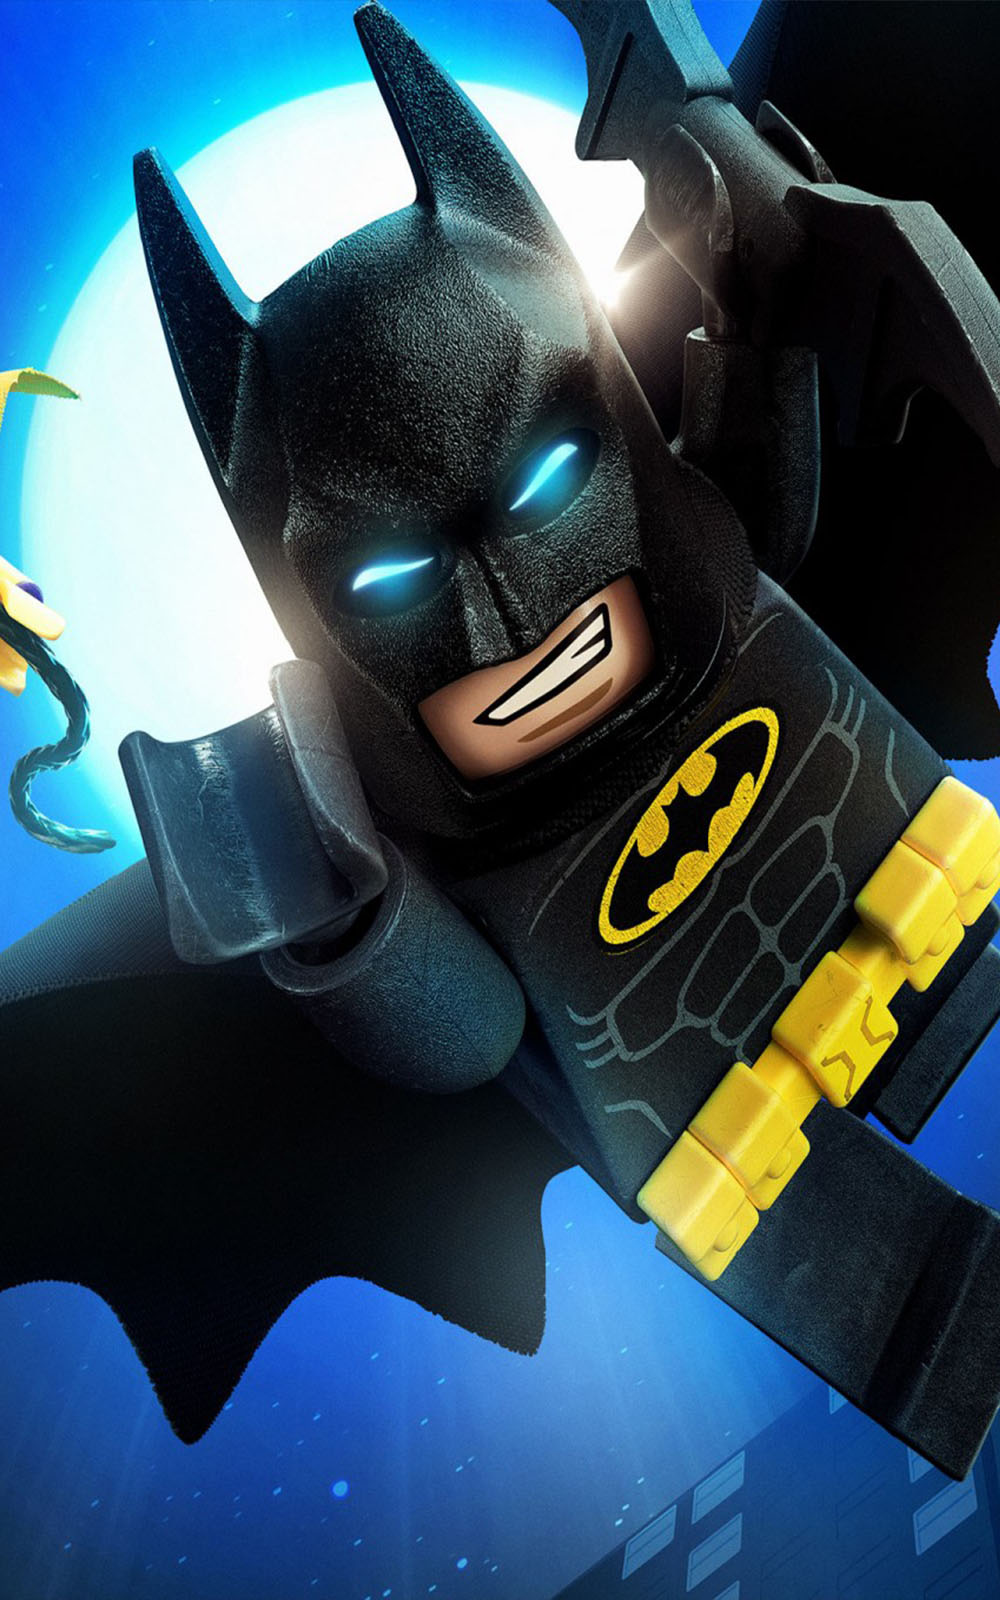 The Lego Batman Movie Mobile Wallpaper Download Free 100 Pure Hd